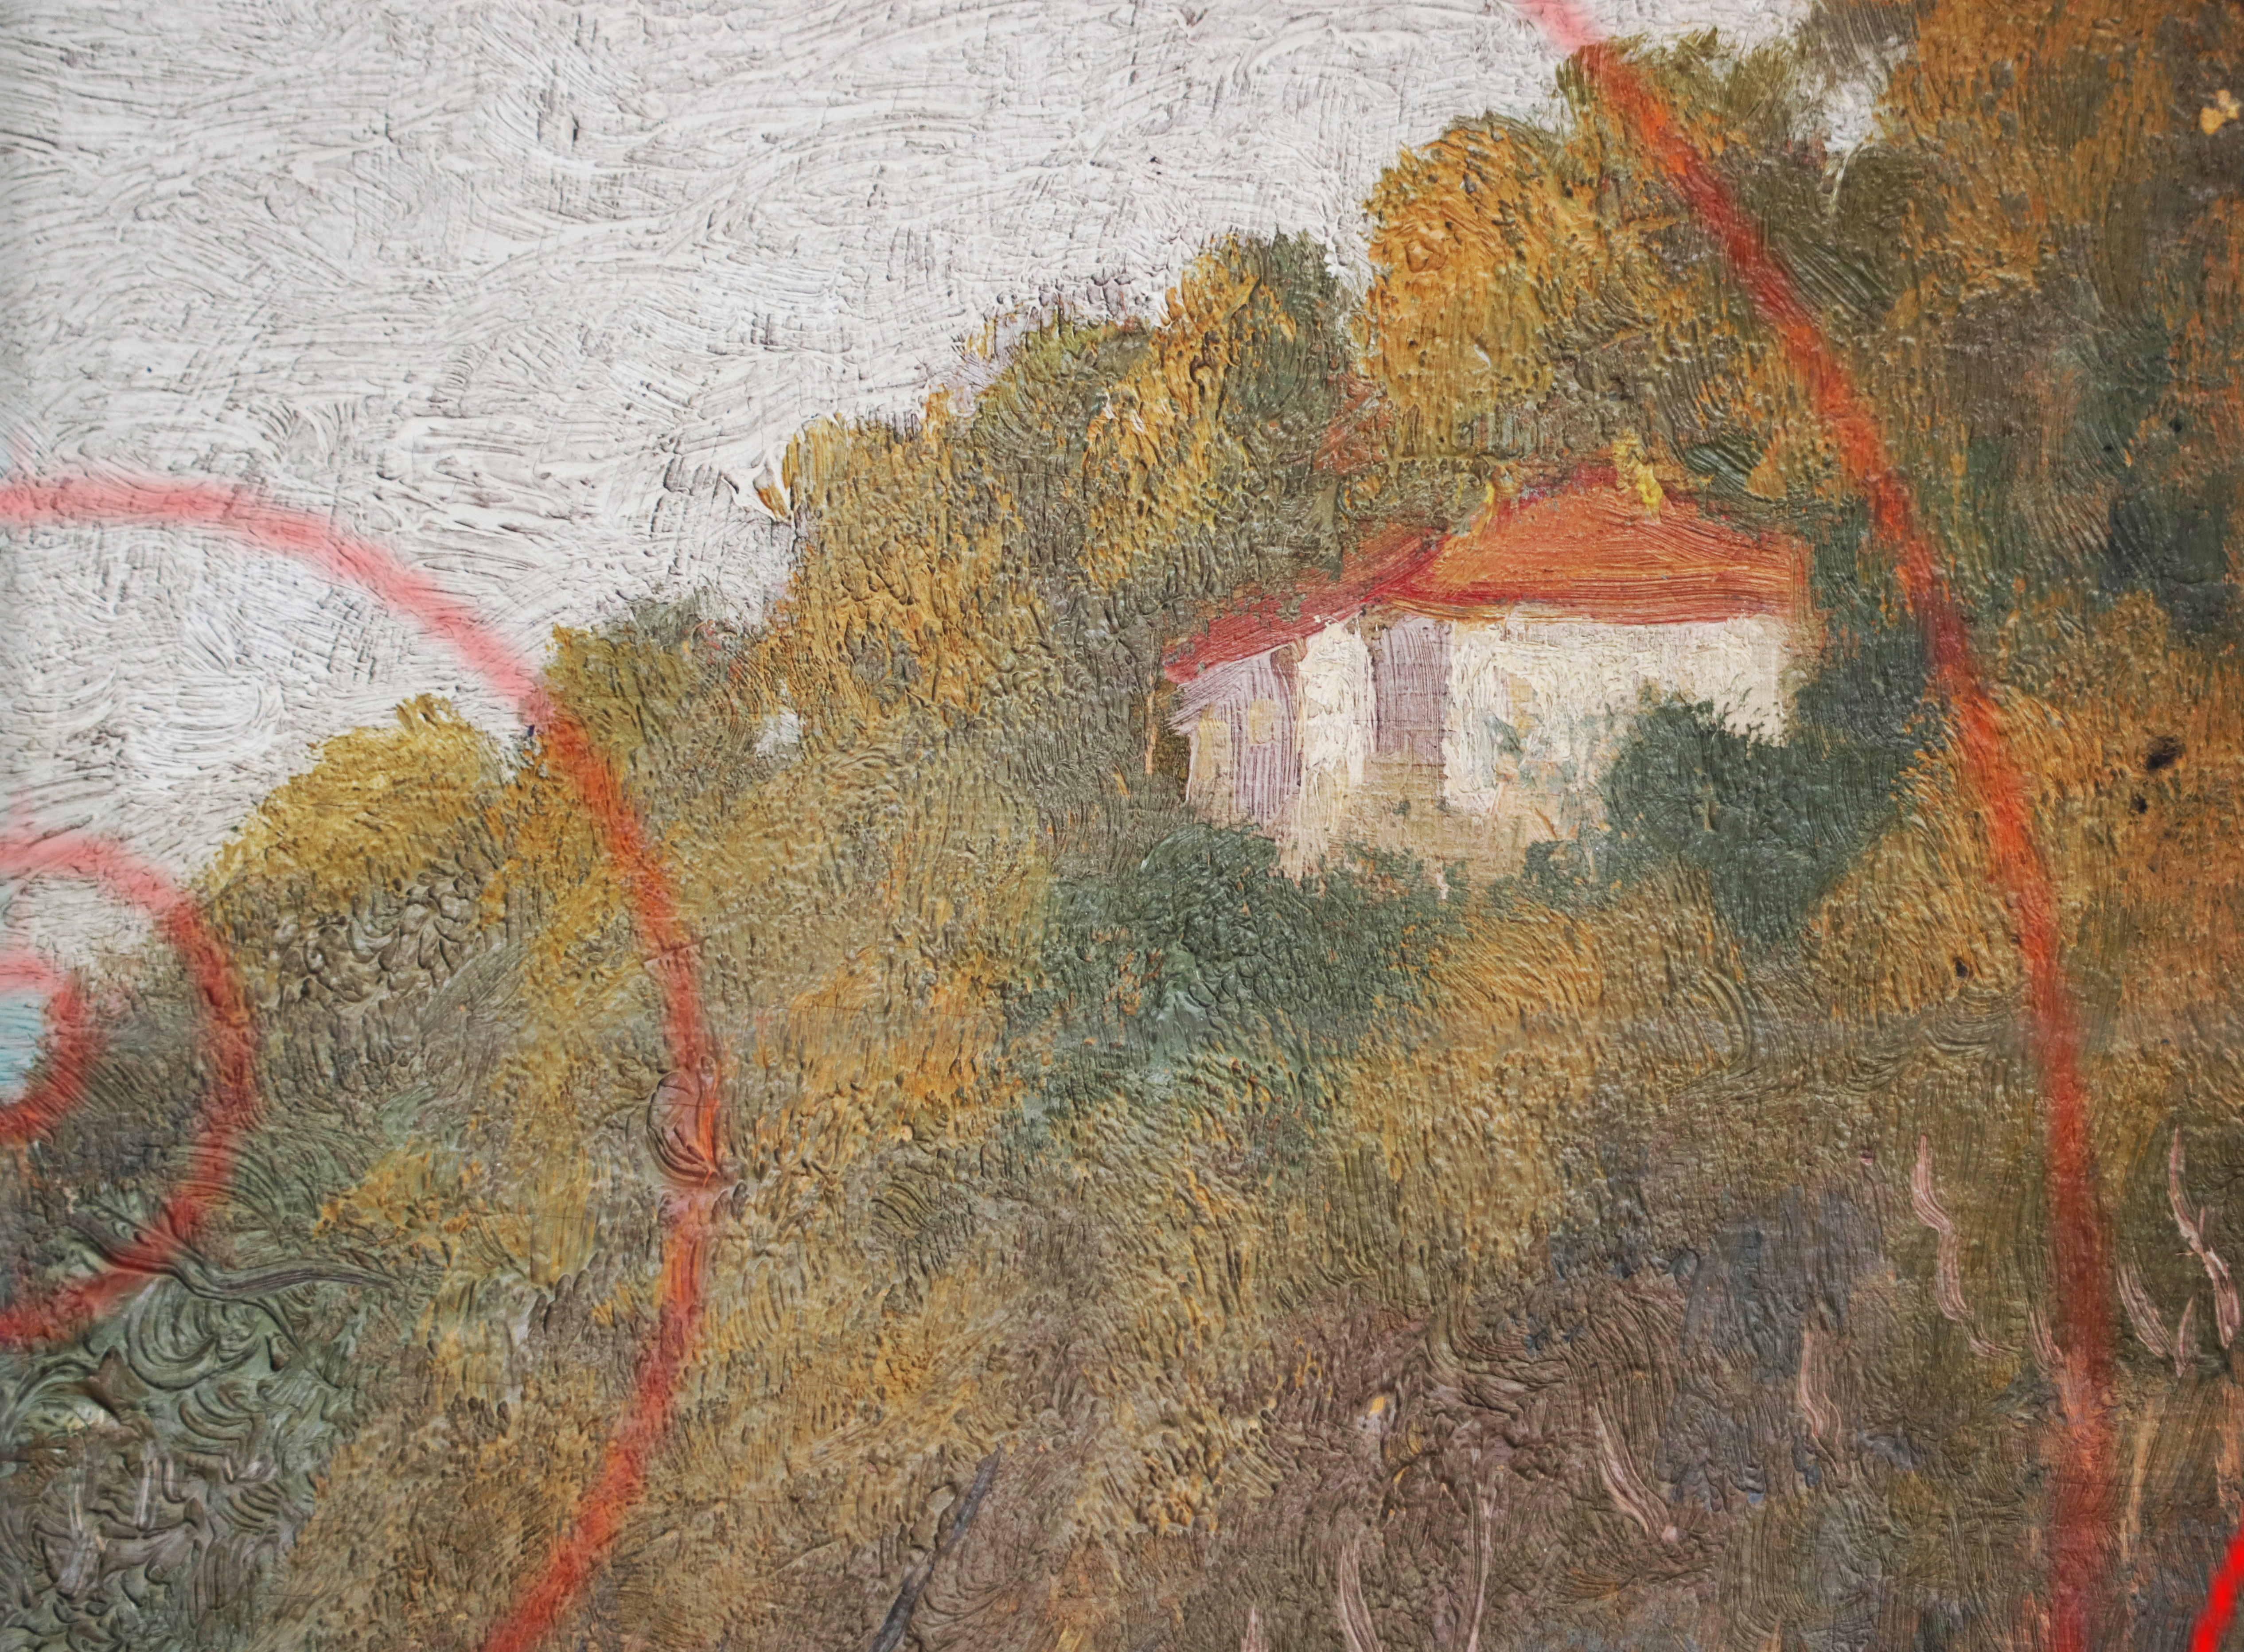 Detail Van Gogh, golden section, sunset, Landscape Provence - Detail,Van Gogh, house